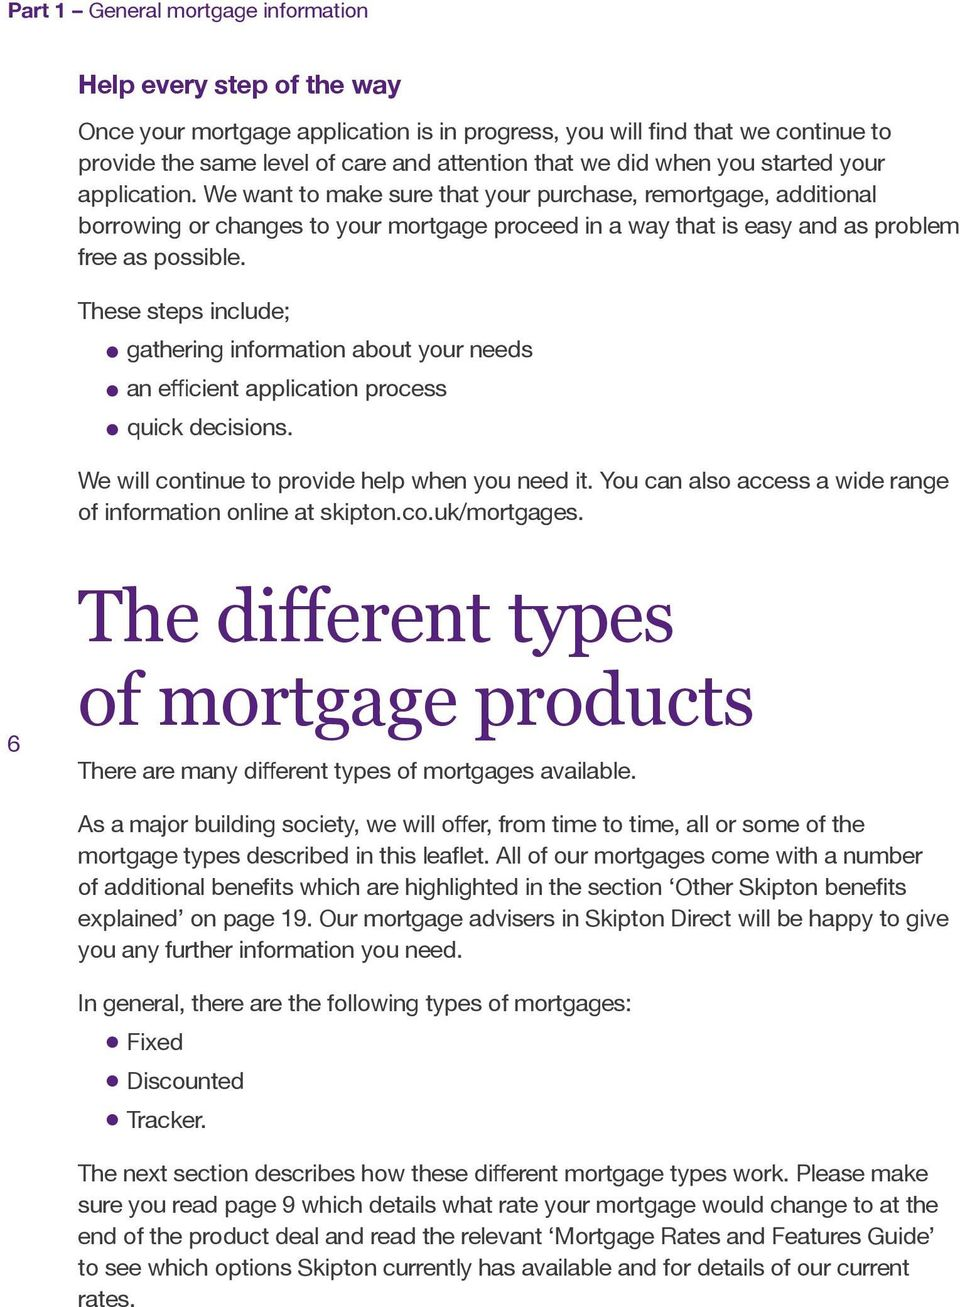 We want to make sure that your purchase, remortgage, additional borrowing or changes to your mortgage proceed in a way that is easy and as problem free as possible.